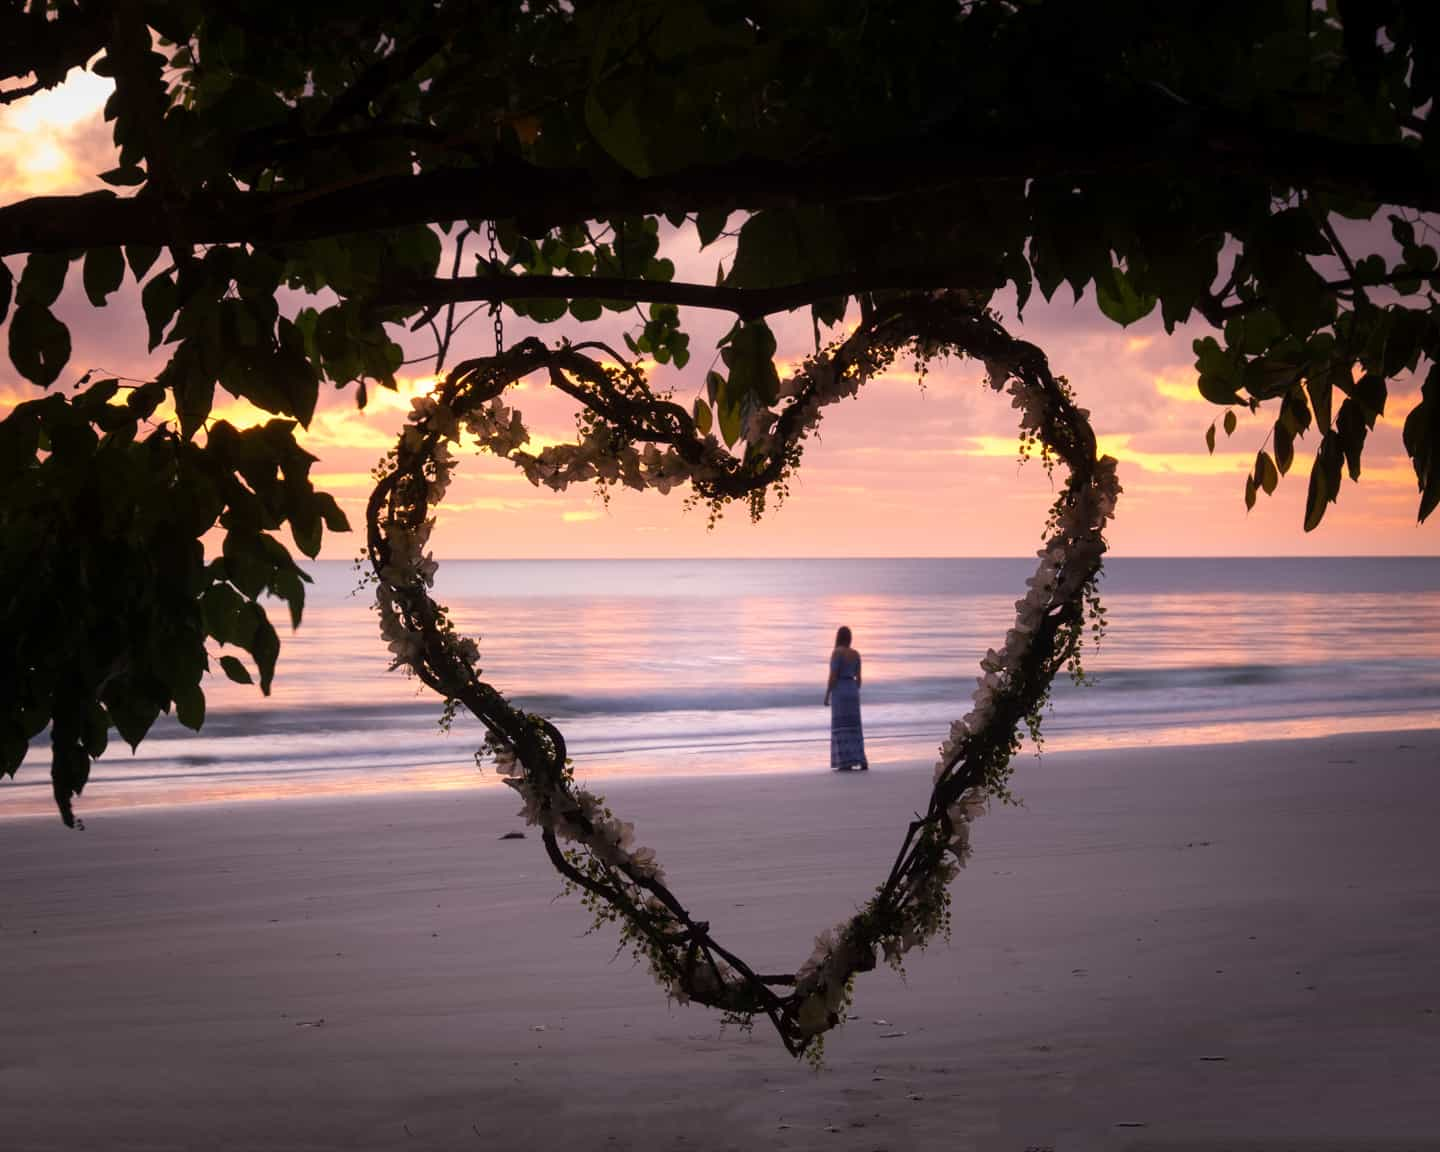 A girl framed in a heart watching the sunrise on the beach at Cape Tribulation, Daintree.